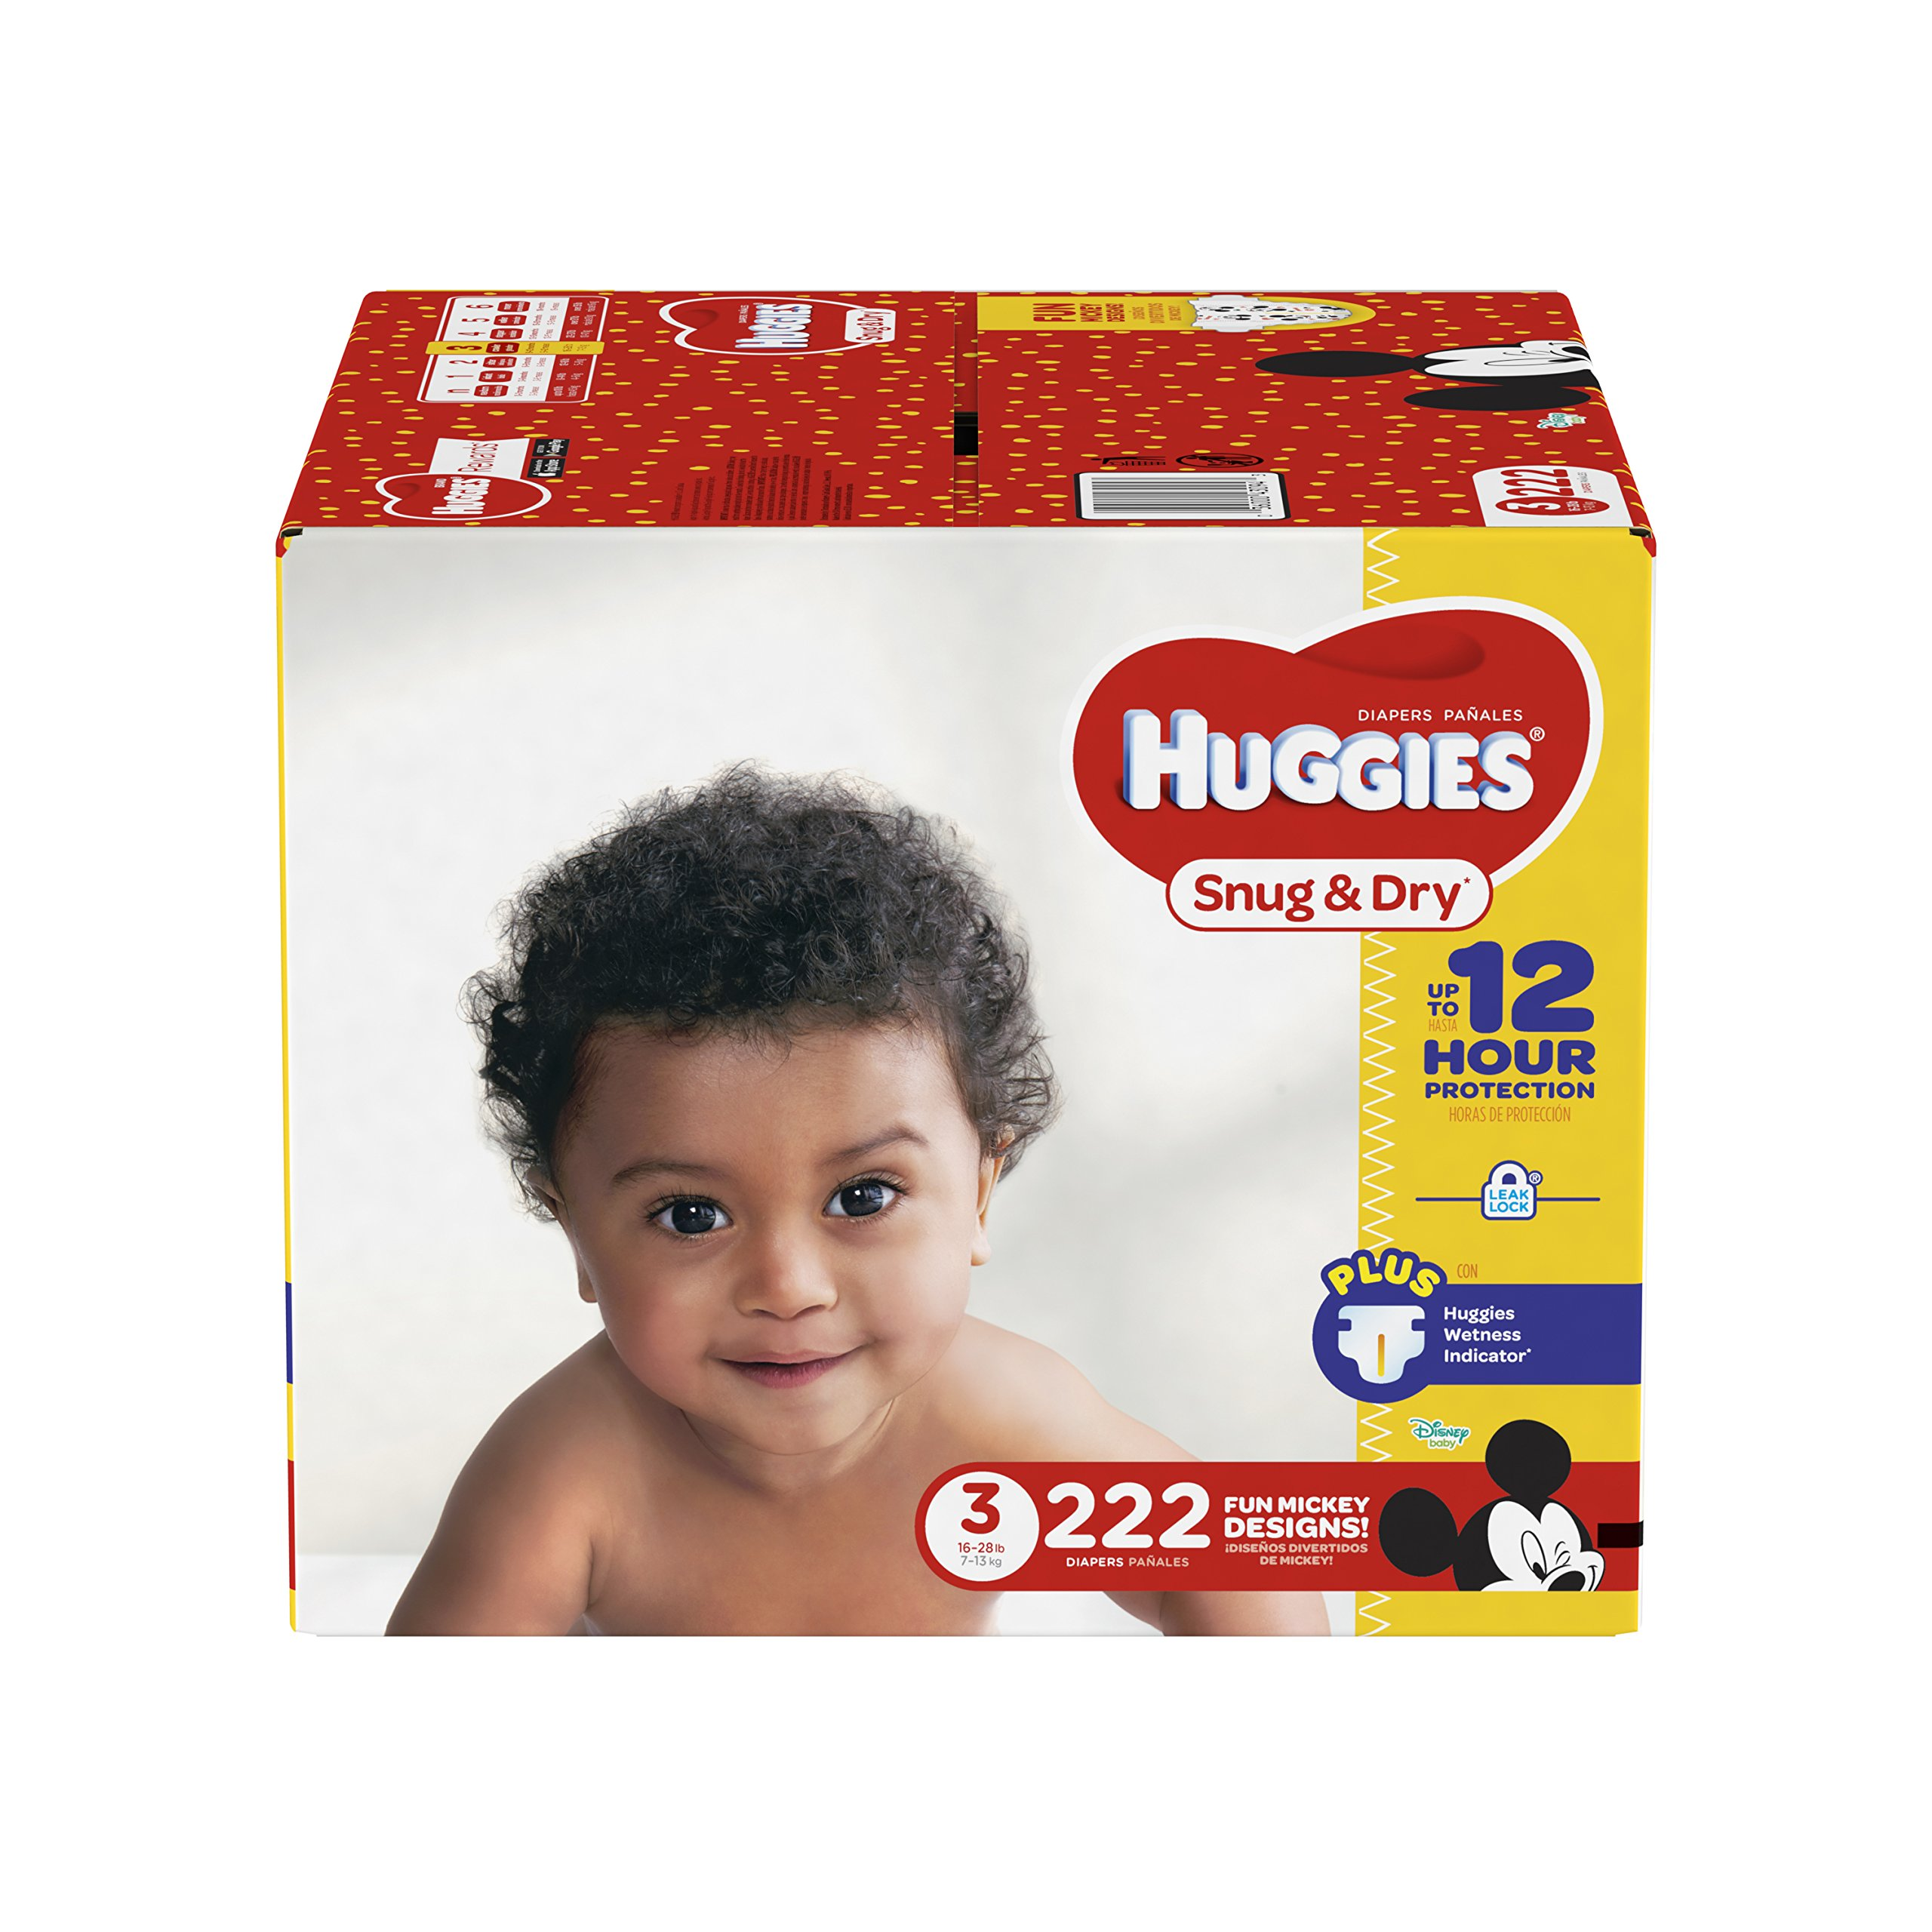 HUGGIES Snug & Dry Diapers, Size 3, for 16-28 lbs, One